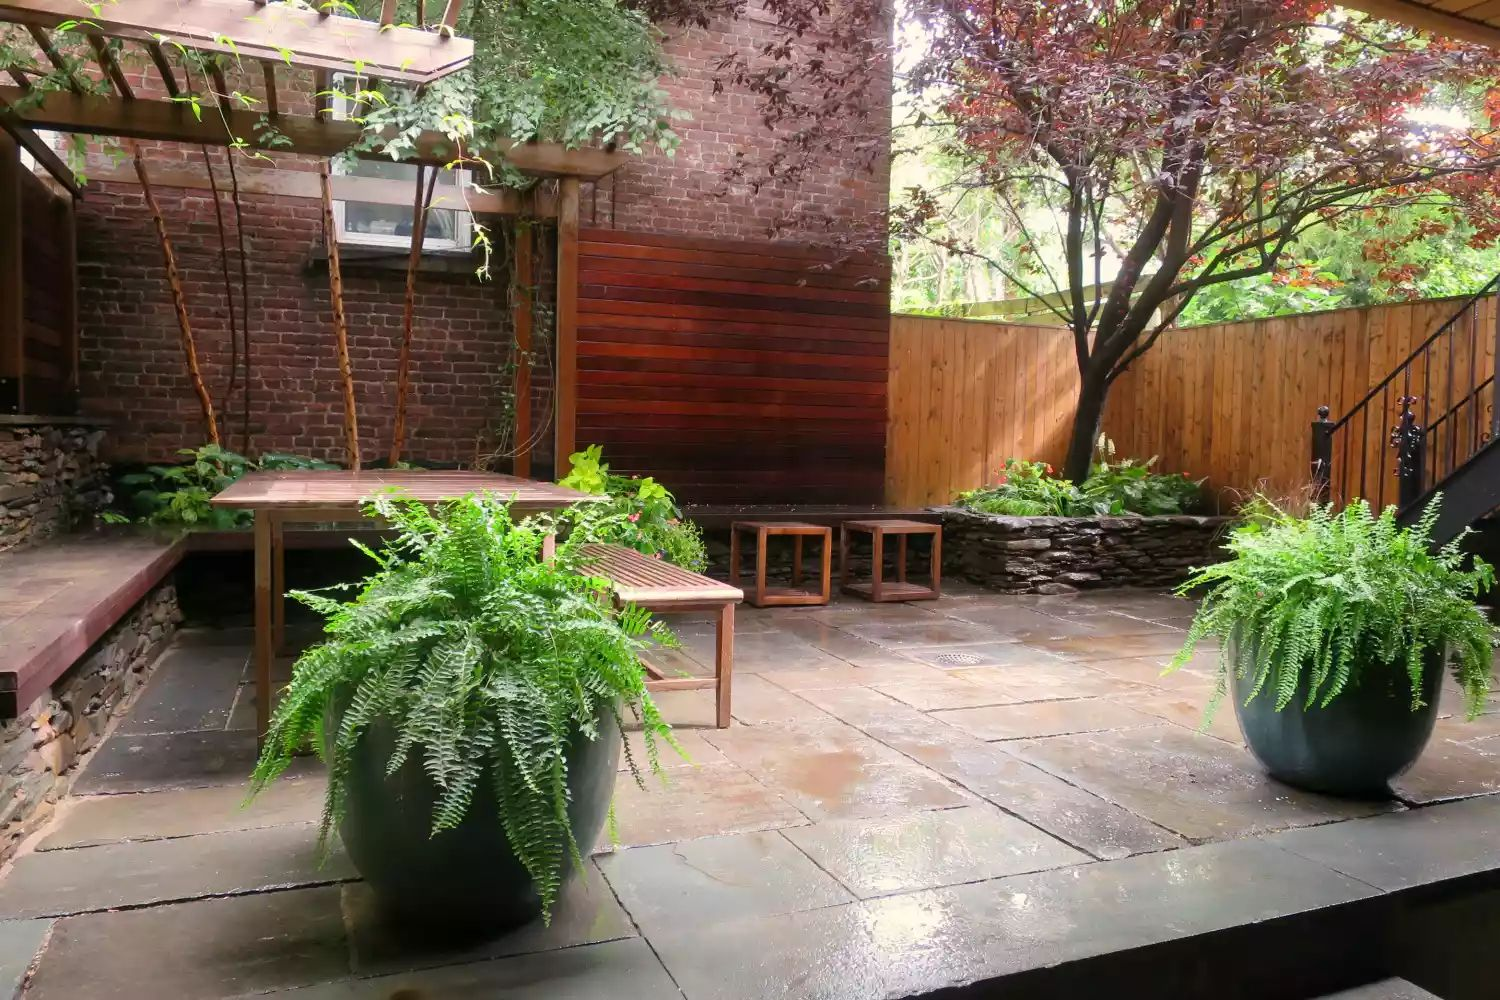 Brooklyn Outdoor Living -   Beautiful Low Maintenance Front Yard Garden and Landscaping Ideas